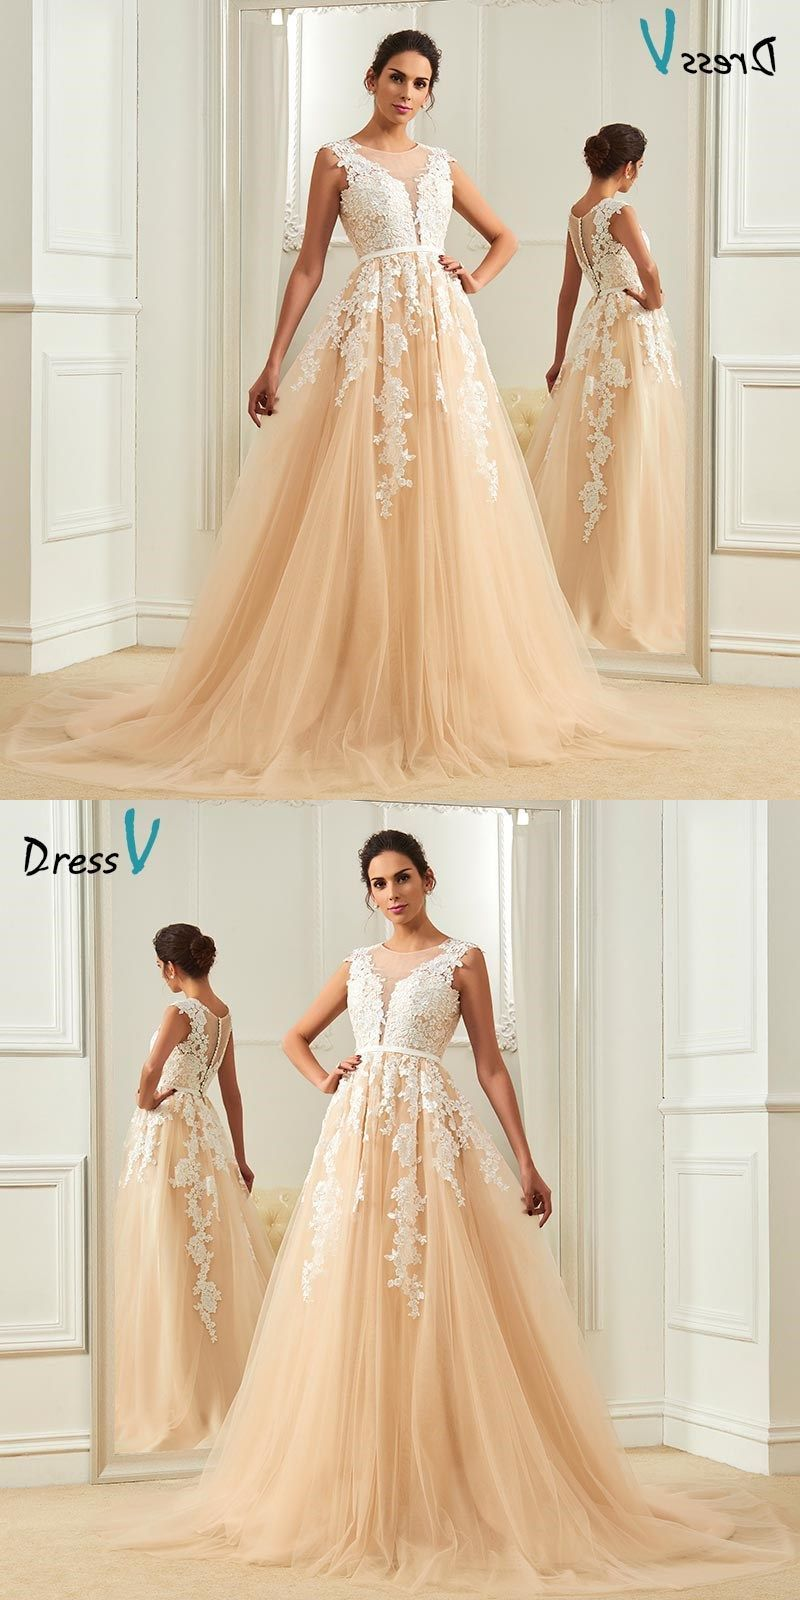 Champagne wedding dressscoop neck a line appliques court train